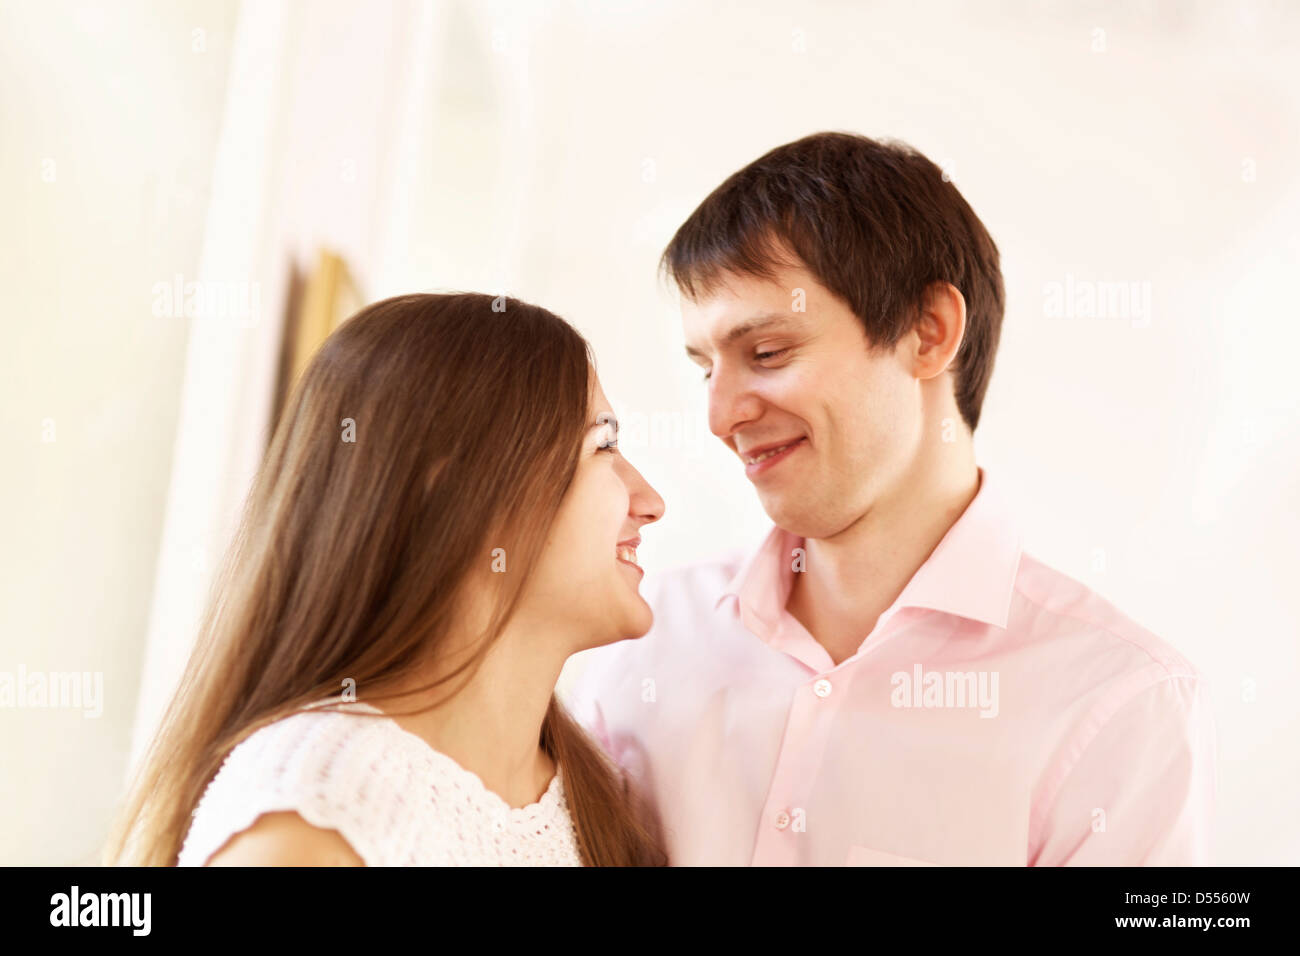 Couple smiling together indoors - Stock Image